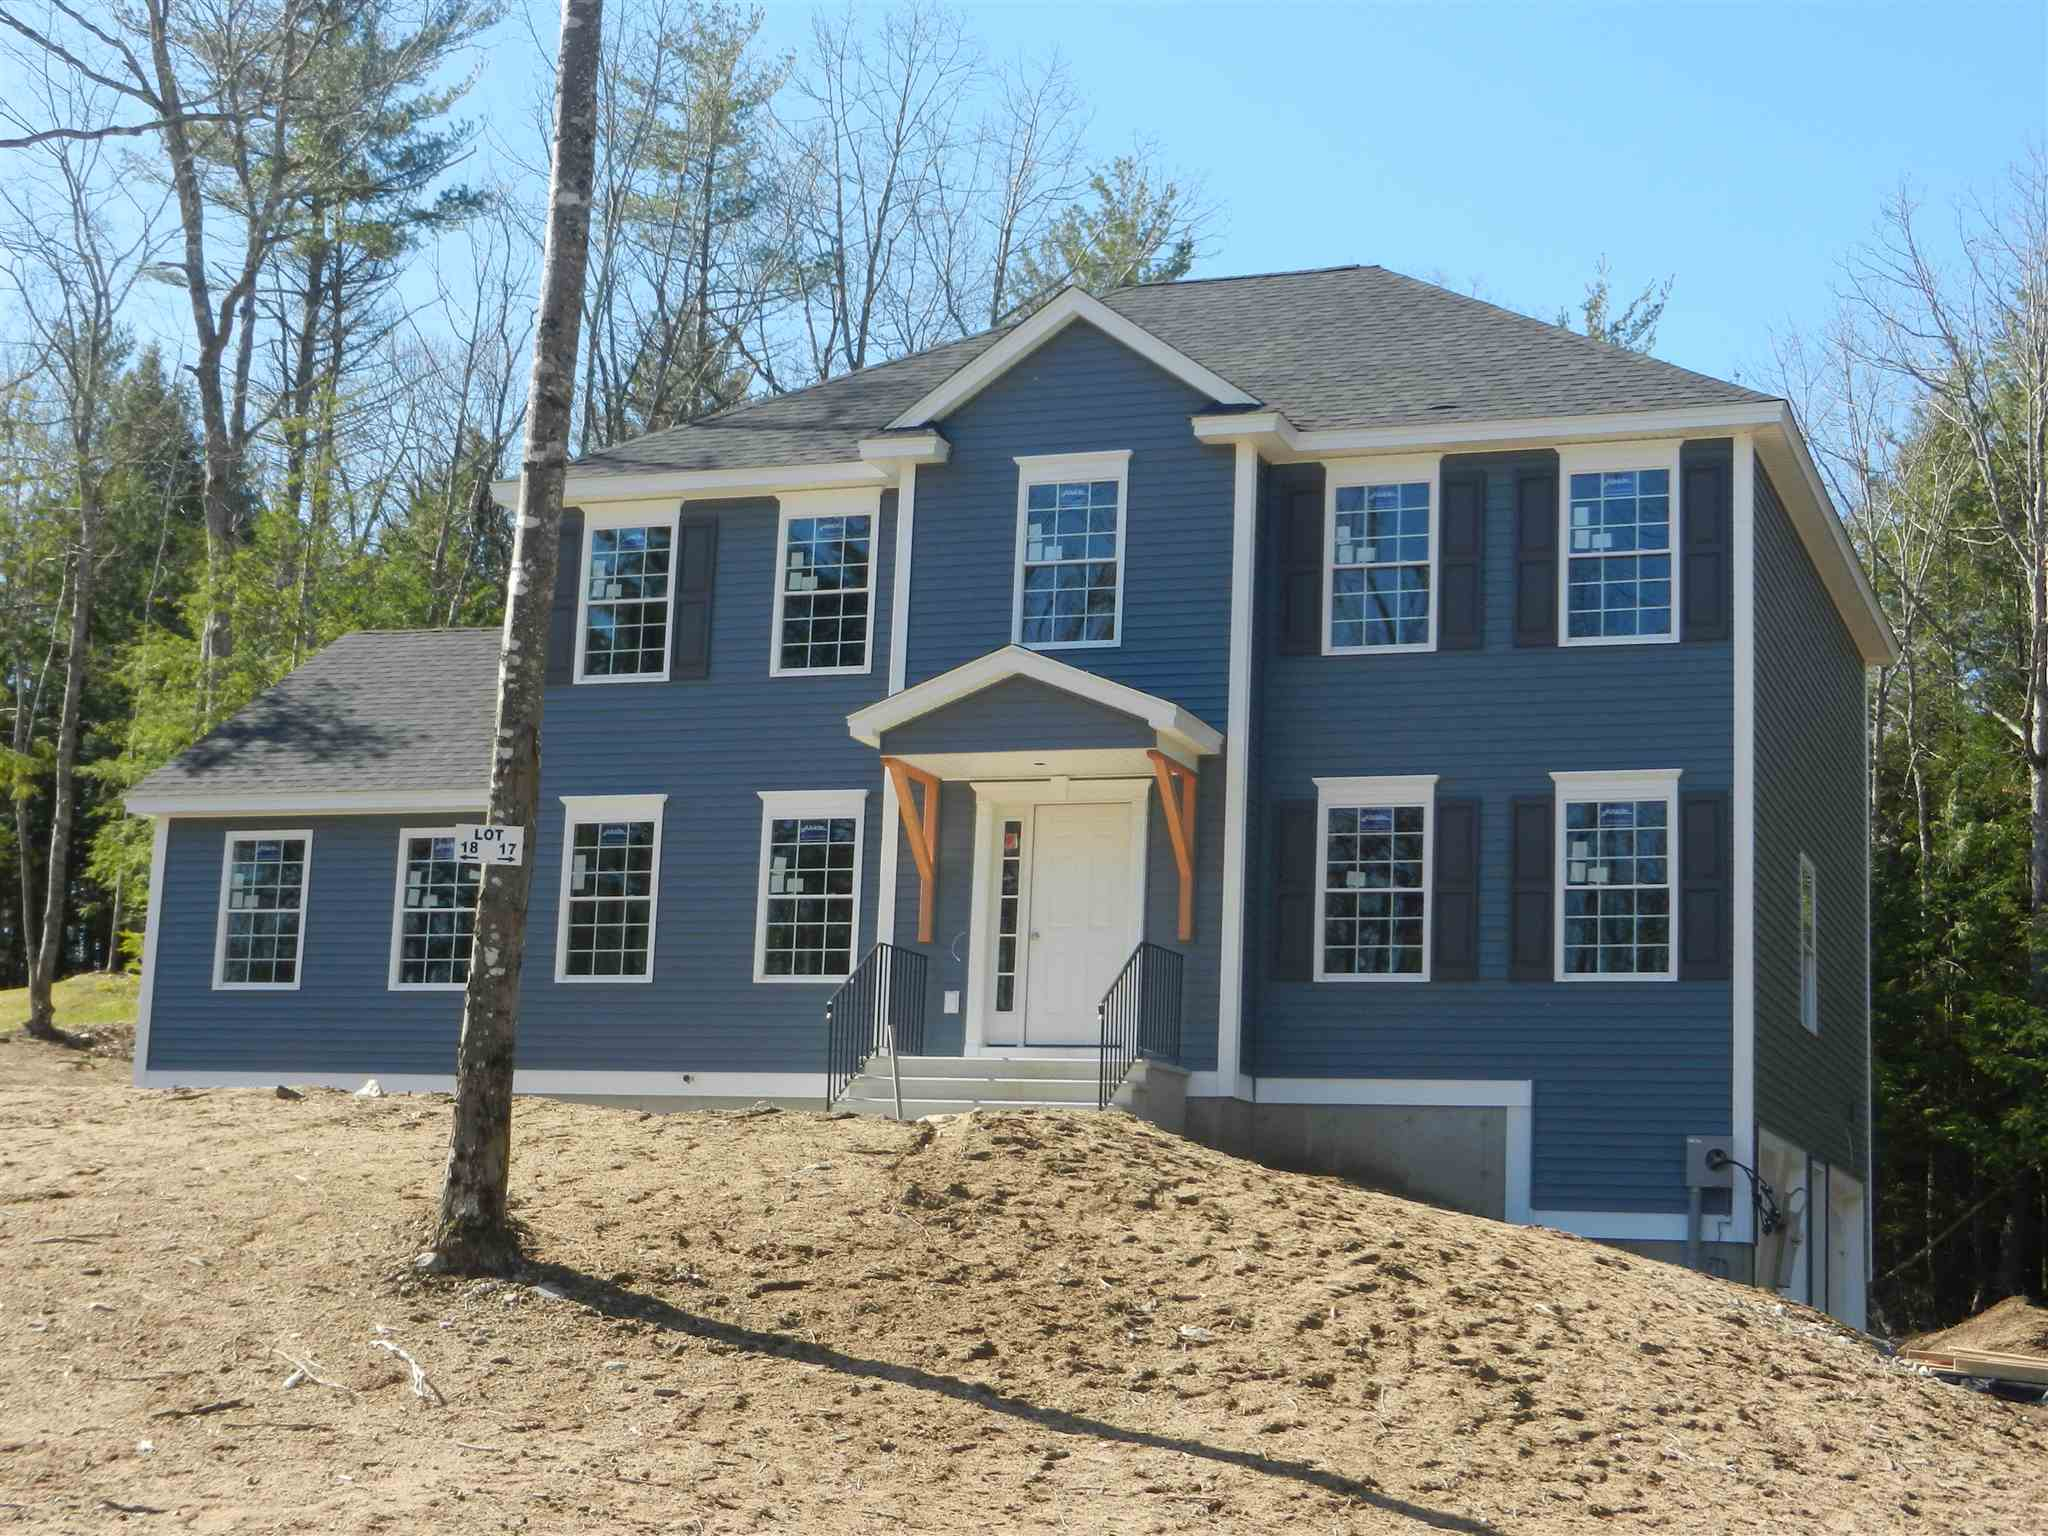 Photo of 29 Sandybrook Drive Raymond NH 03077